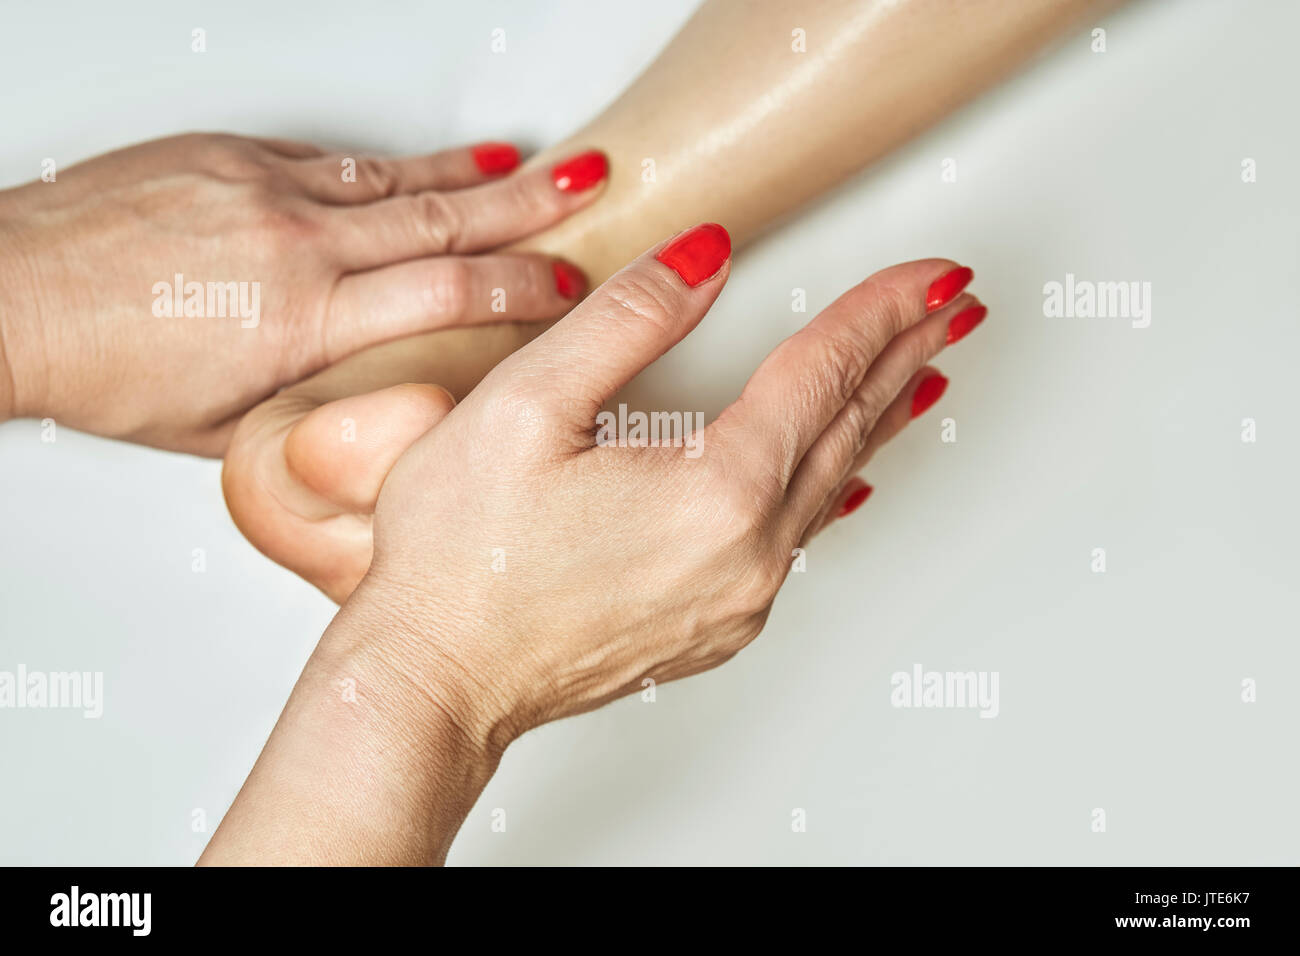 Hands of professional masseuse applying pressure on toes to release the foot stress. Spa and Wellness. Closeup. - Stock Image